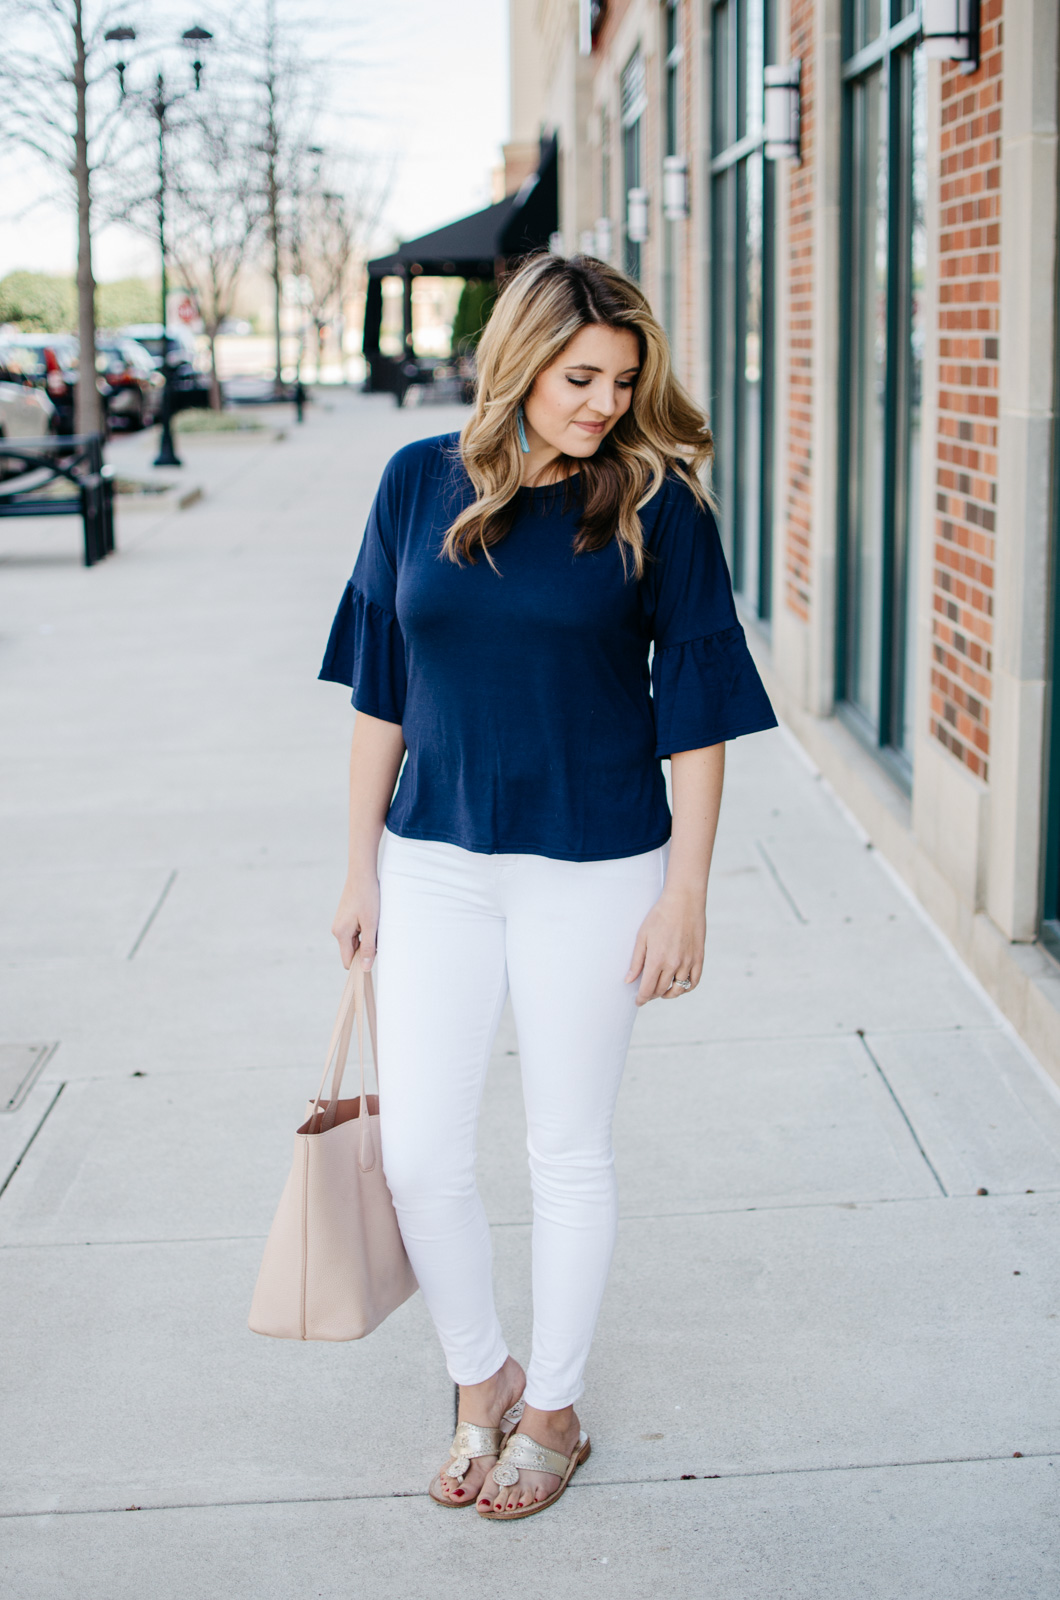 simple spring outfit with bell sleeve tee | Want more cute spring outfits? Head to bylaurenm.com!